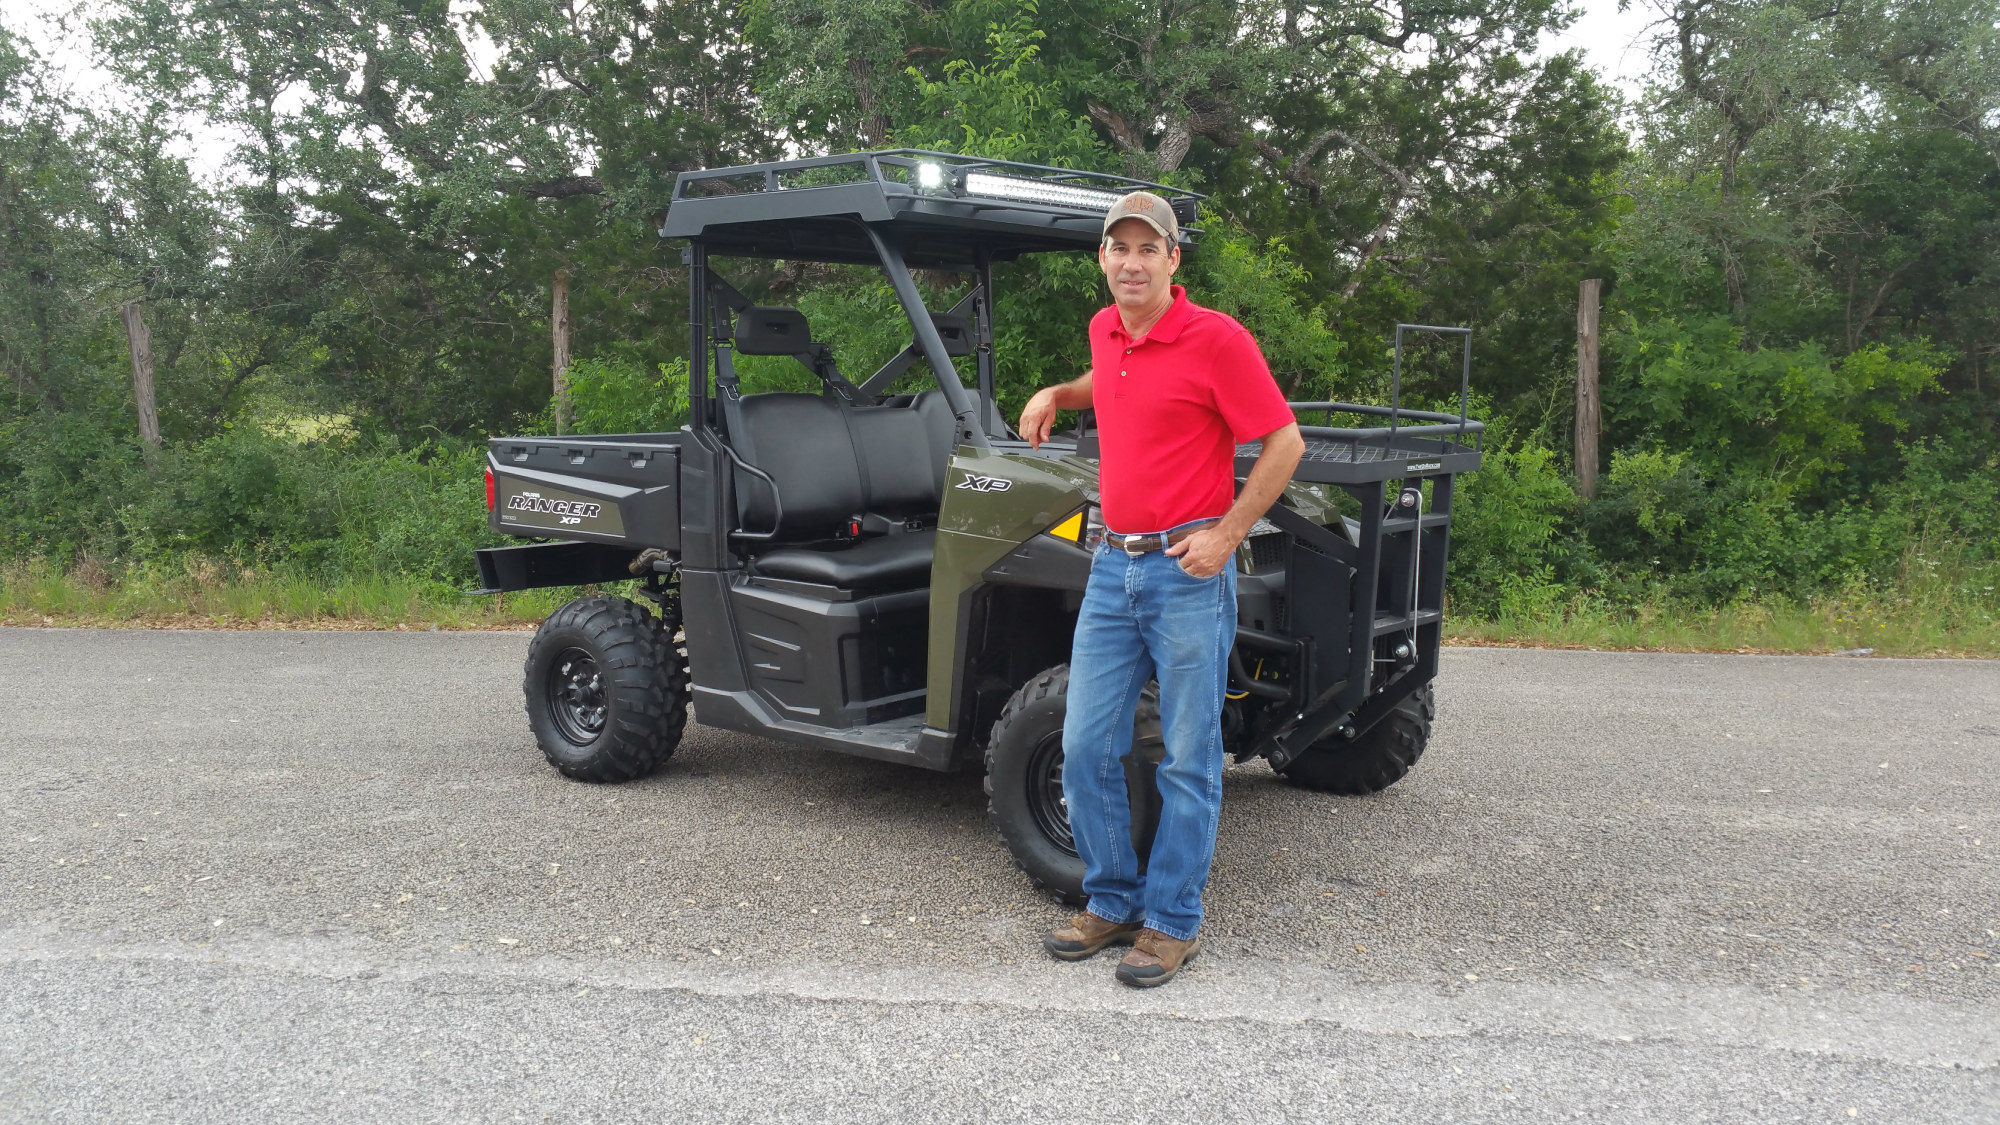 polaris-ranger-900-570-xp-single-cab-metal-top-and-rear-bumper.jpg